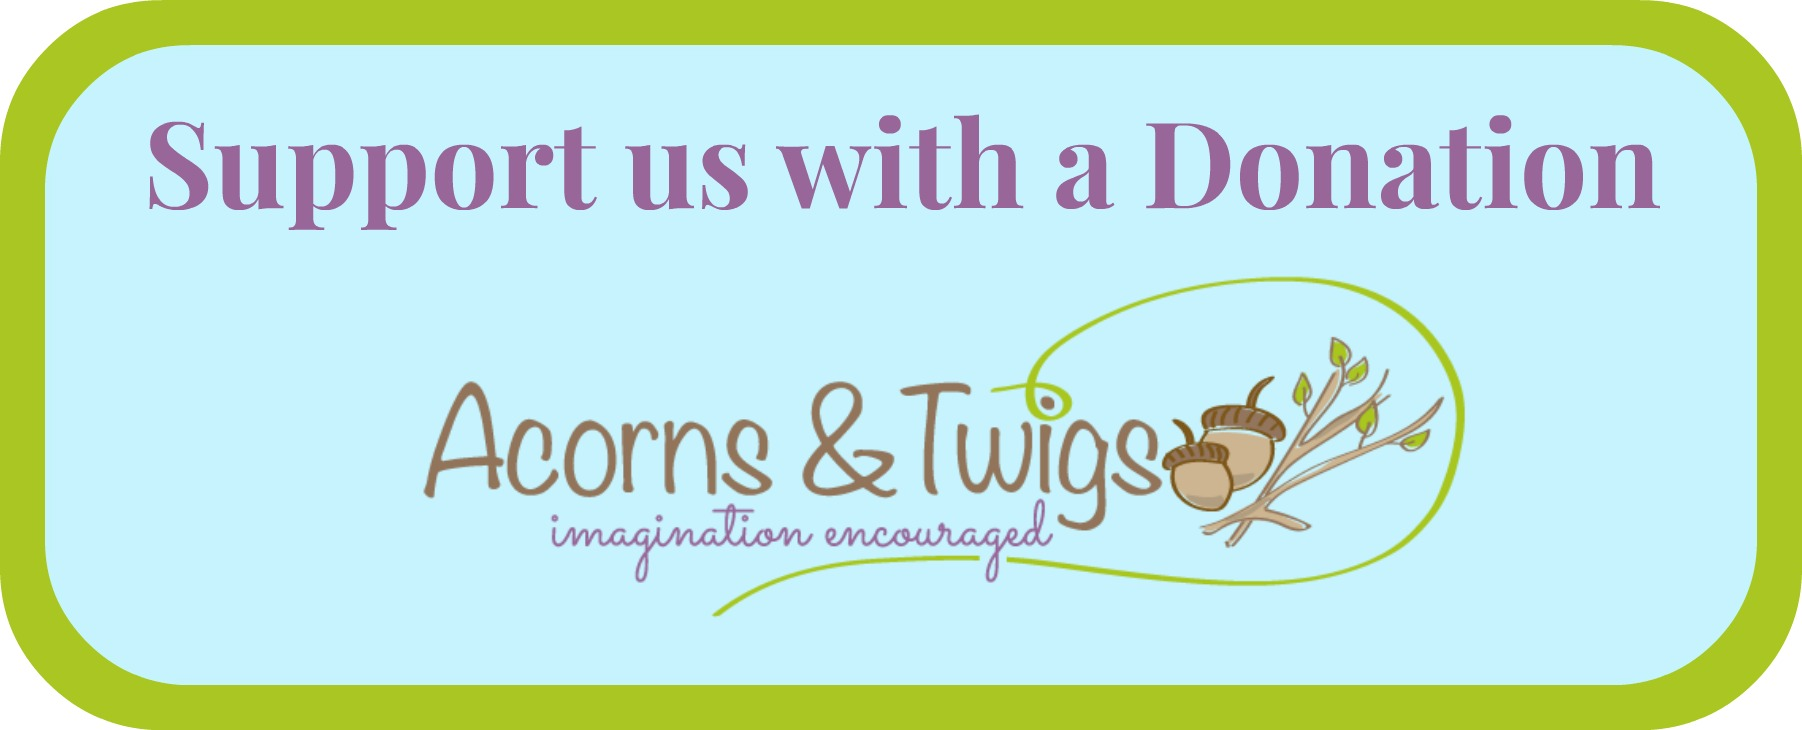 Support Acorns & Twigs With A Donation!